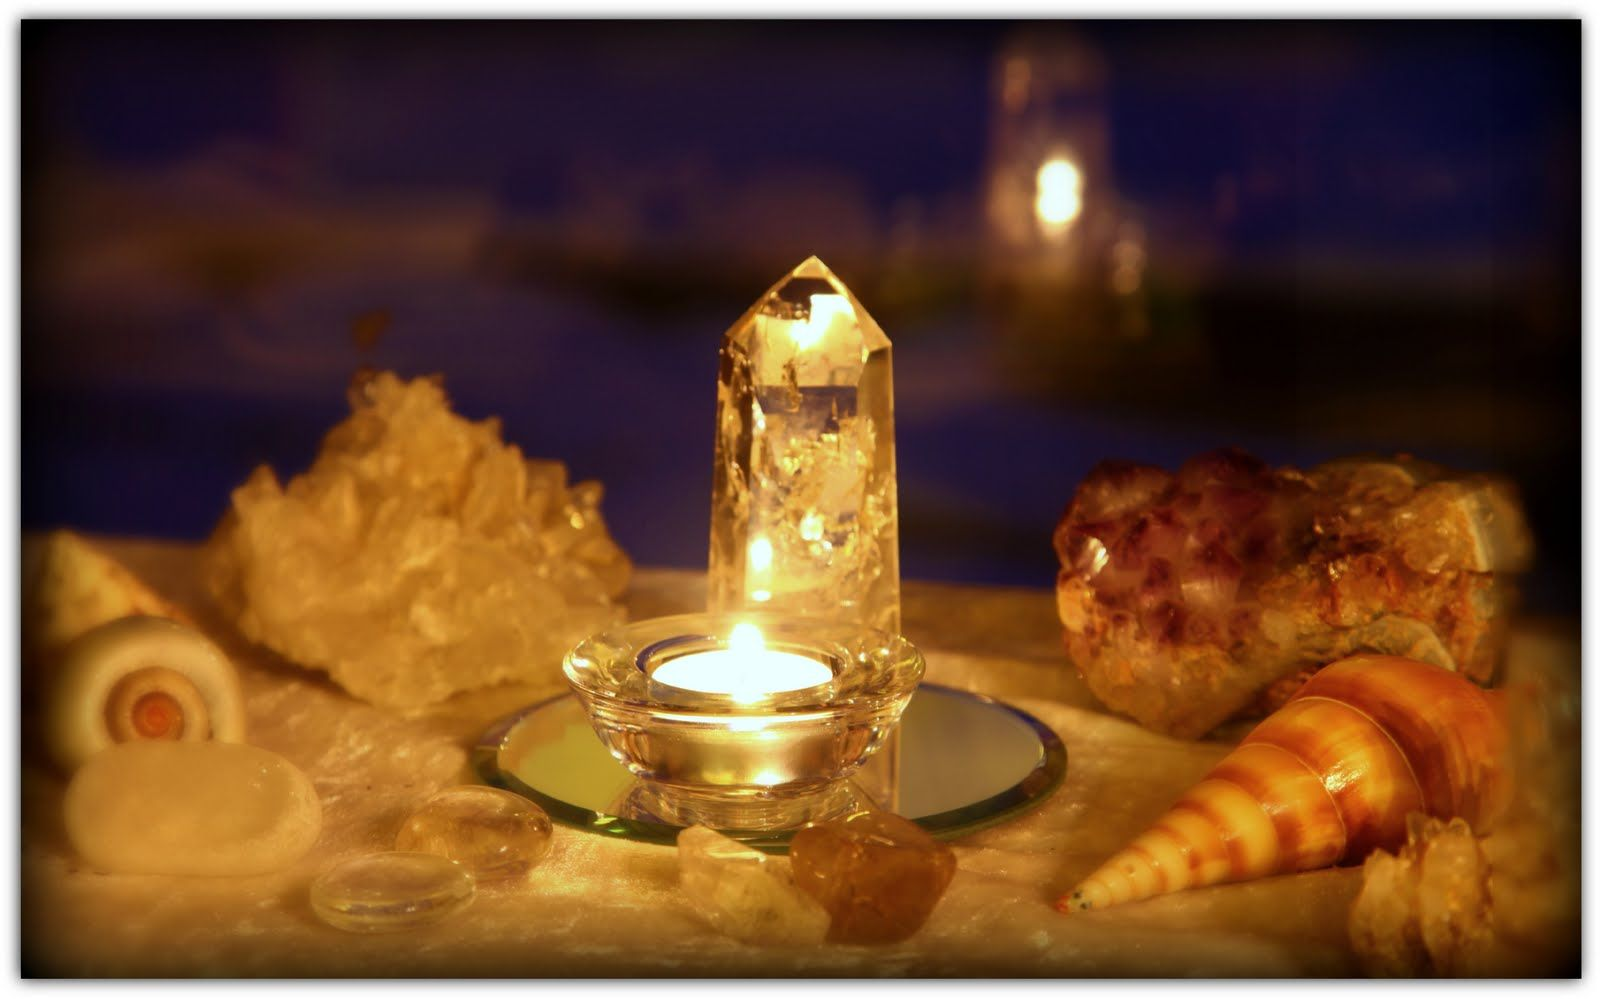 Celebrating Advent-Week one, the Mineral Kingdom | Celebrate advent, Advent,  Nature table